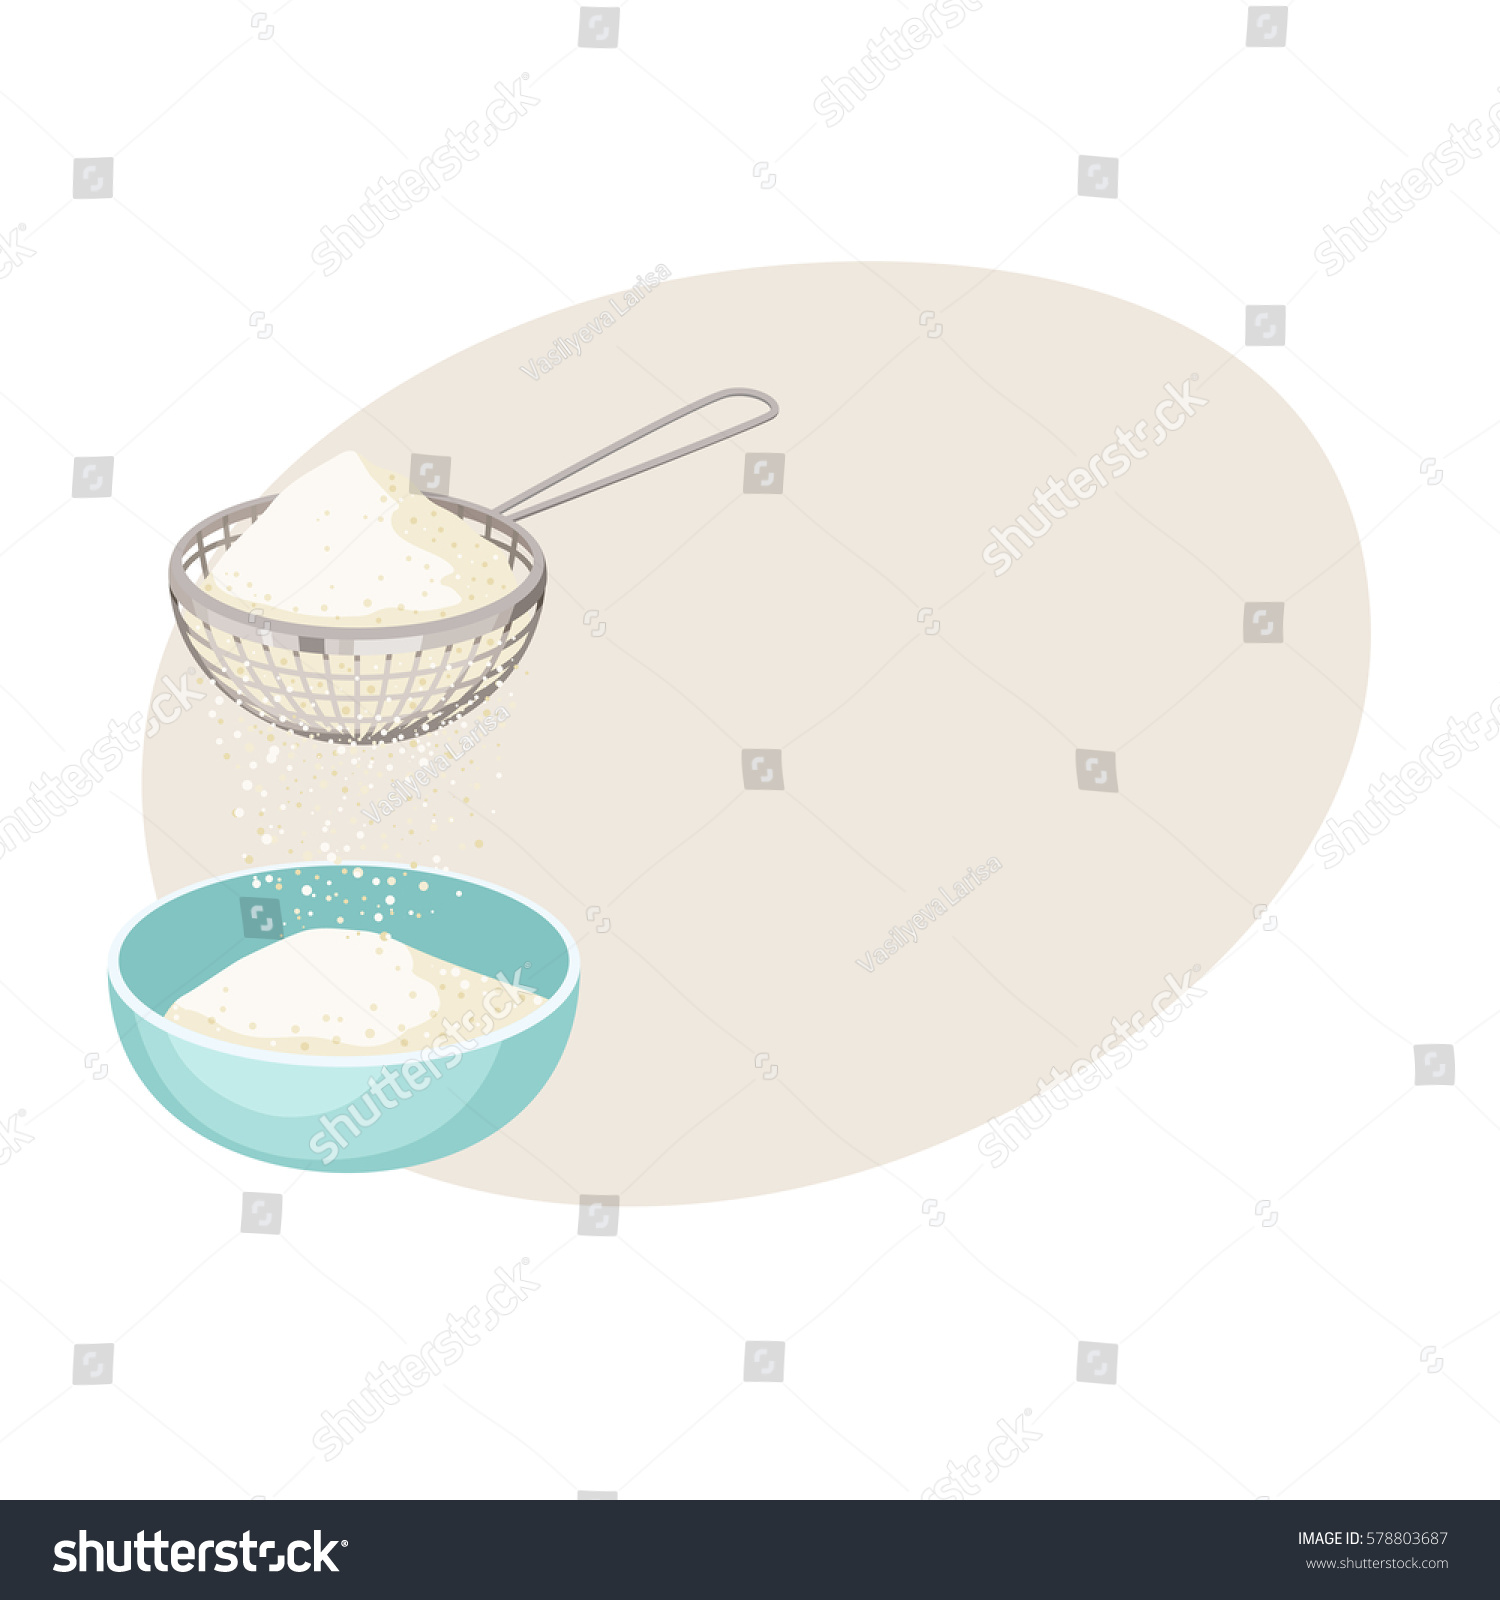 flour sifter sieve on cup baking stock vector 578803687 - shutterstock